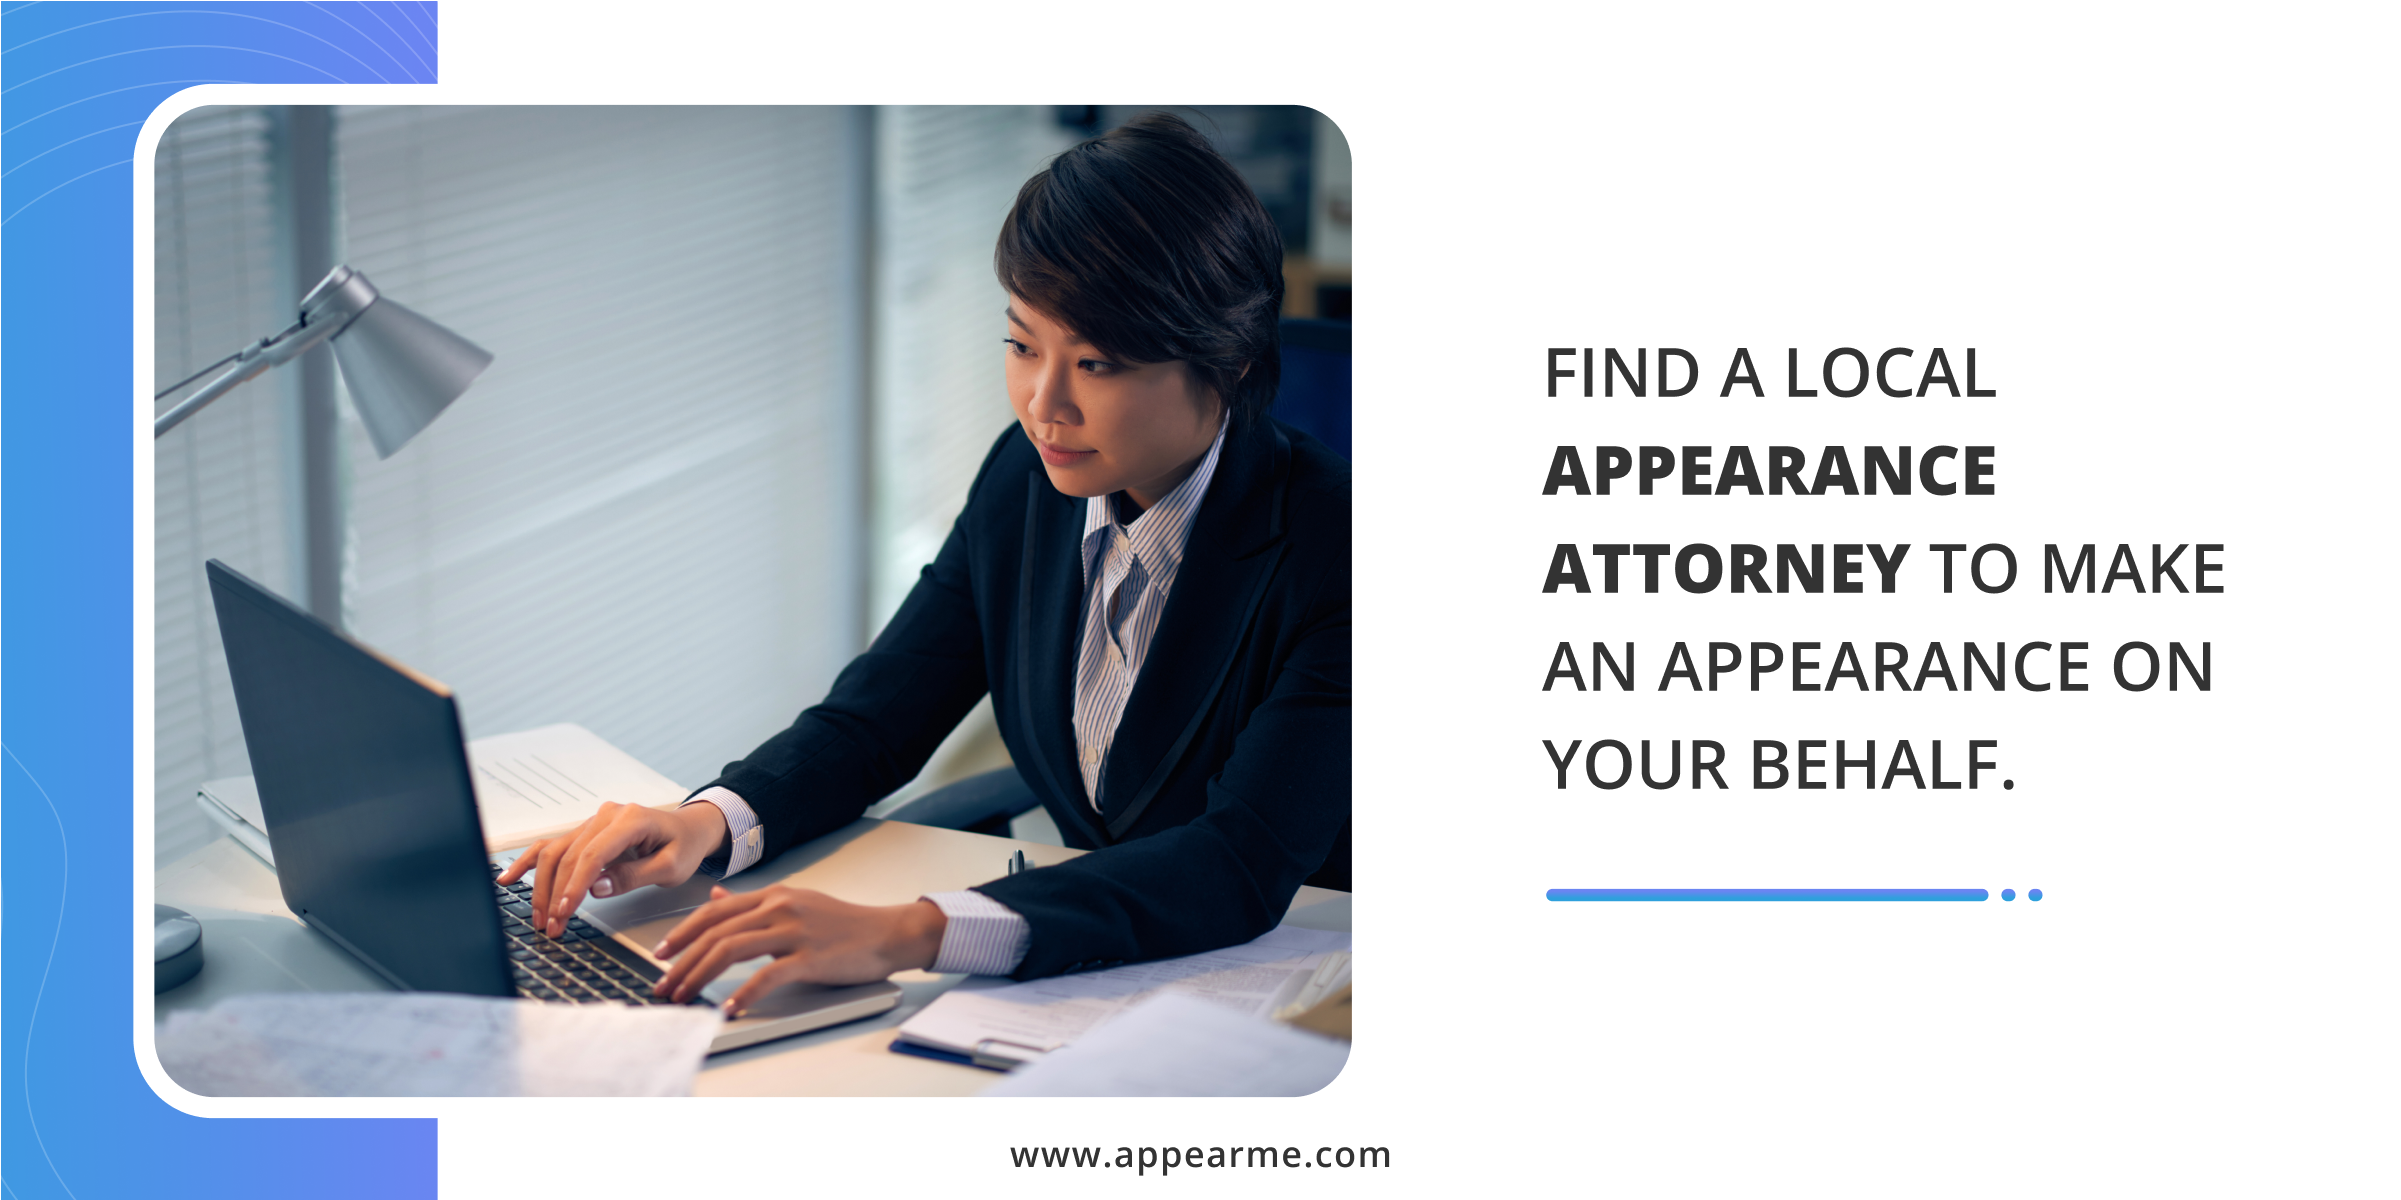 Find a Local Appearance Attorney to Make an Appearance on Your Behalf